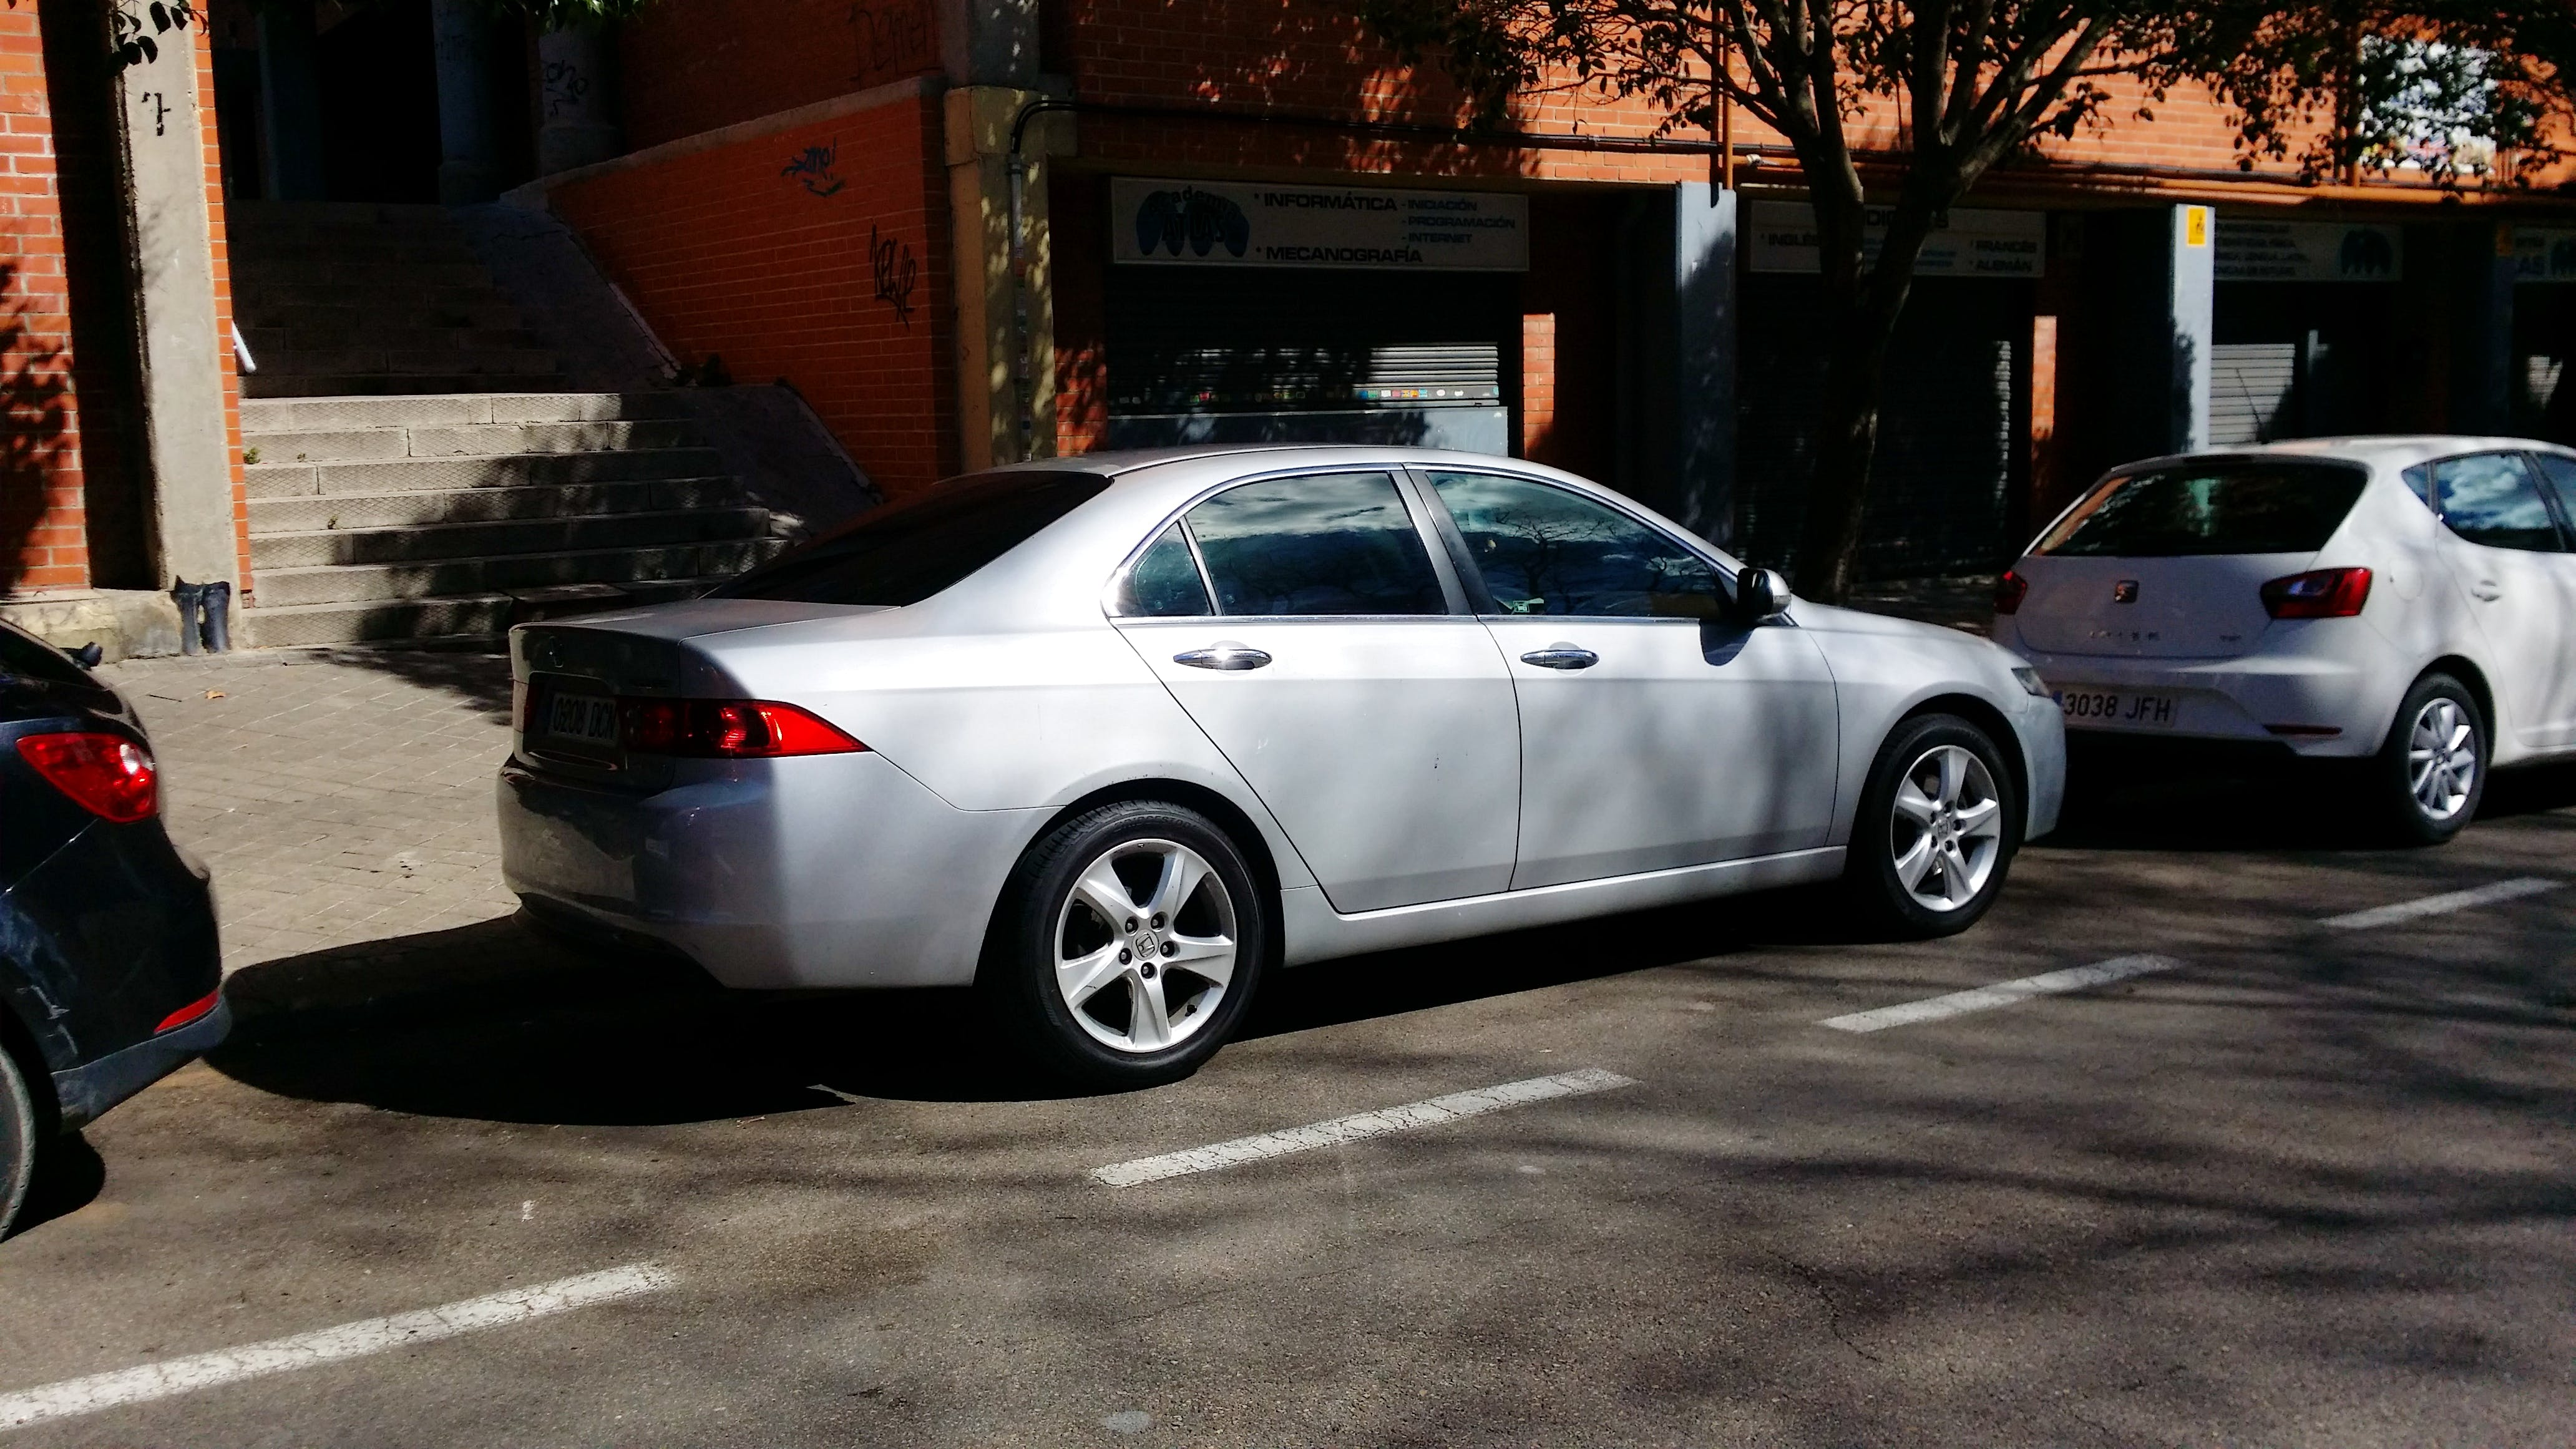 Honda Accord 2.2 ictdi 140cv executive piel con Aire acondicionado